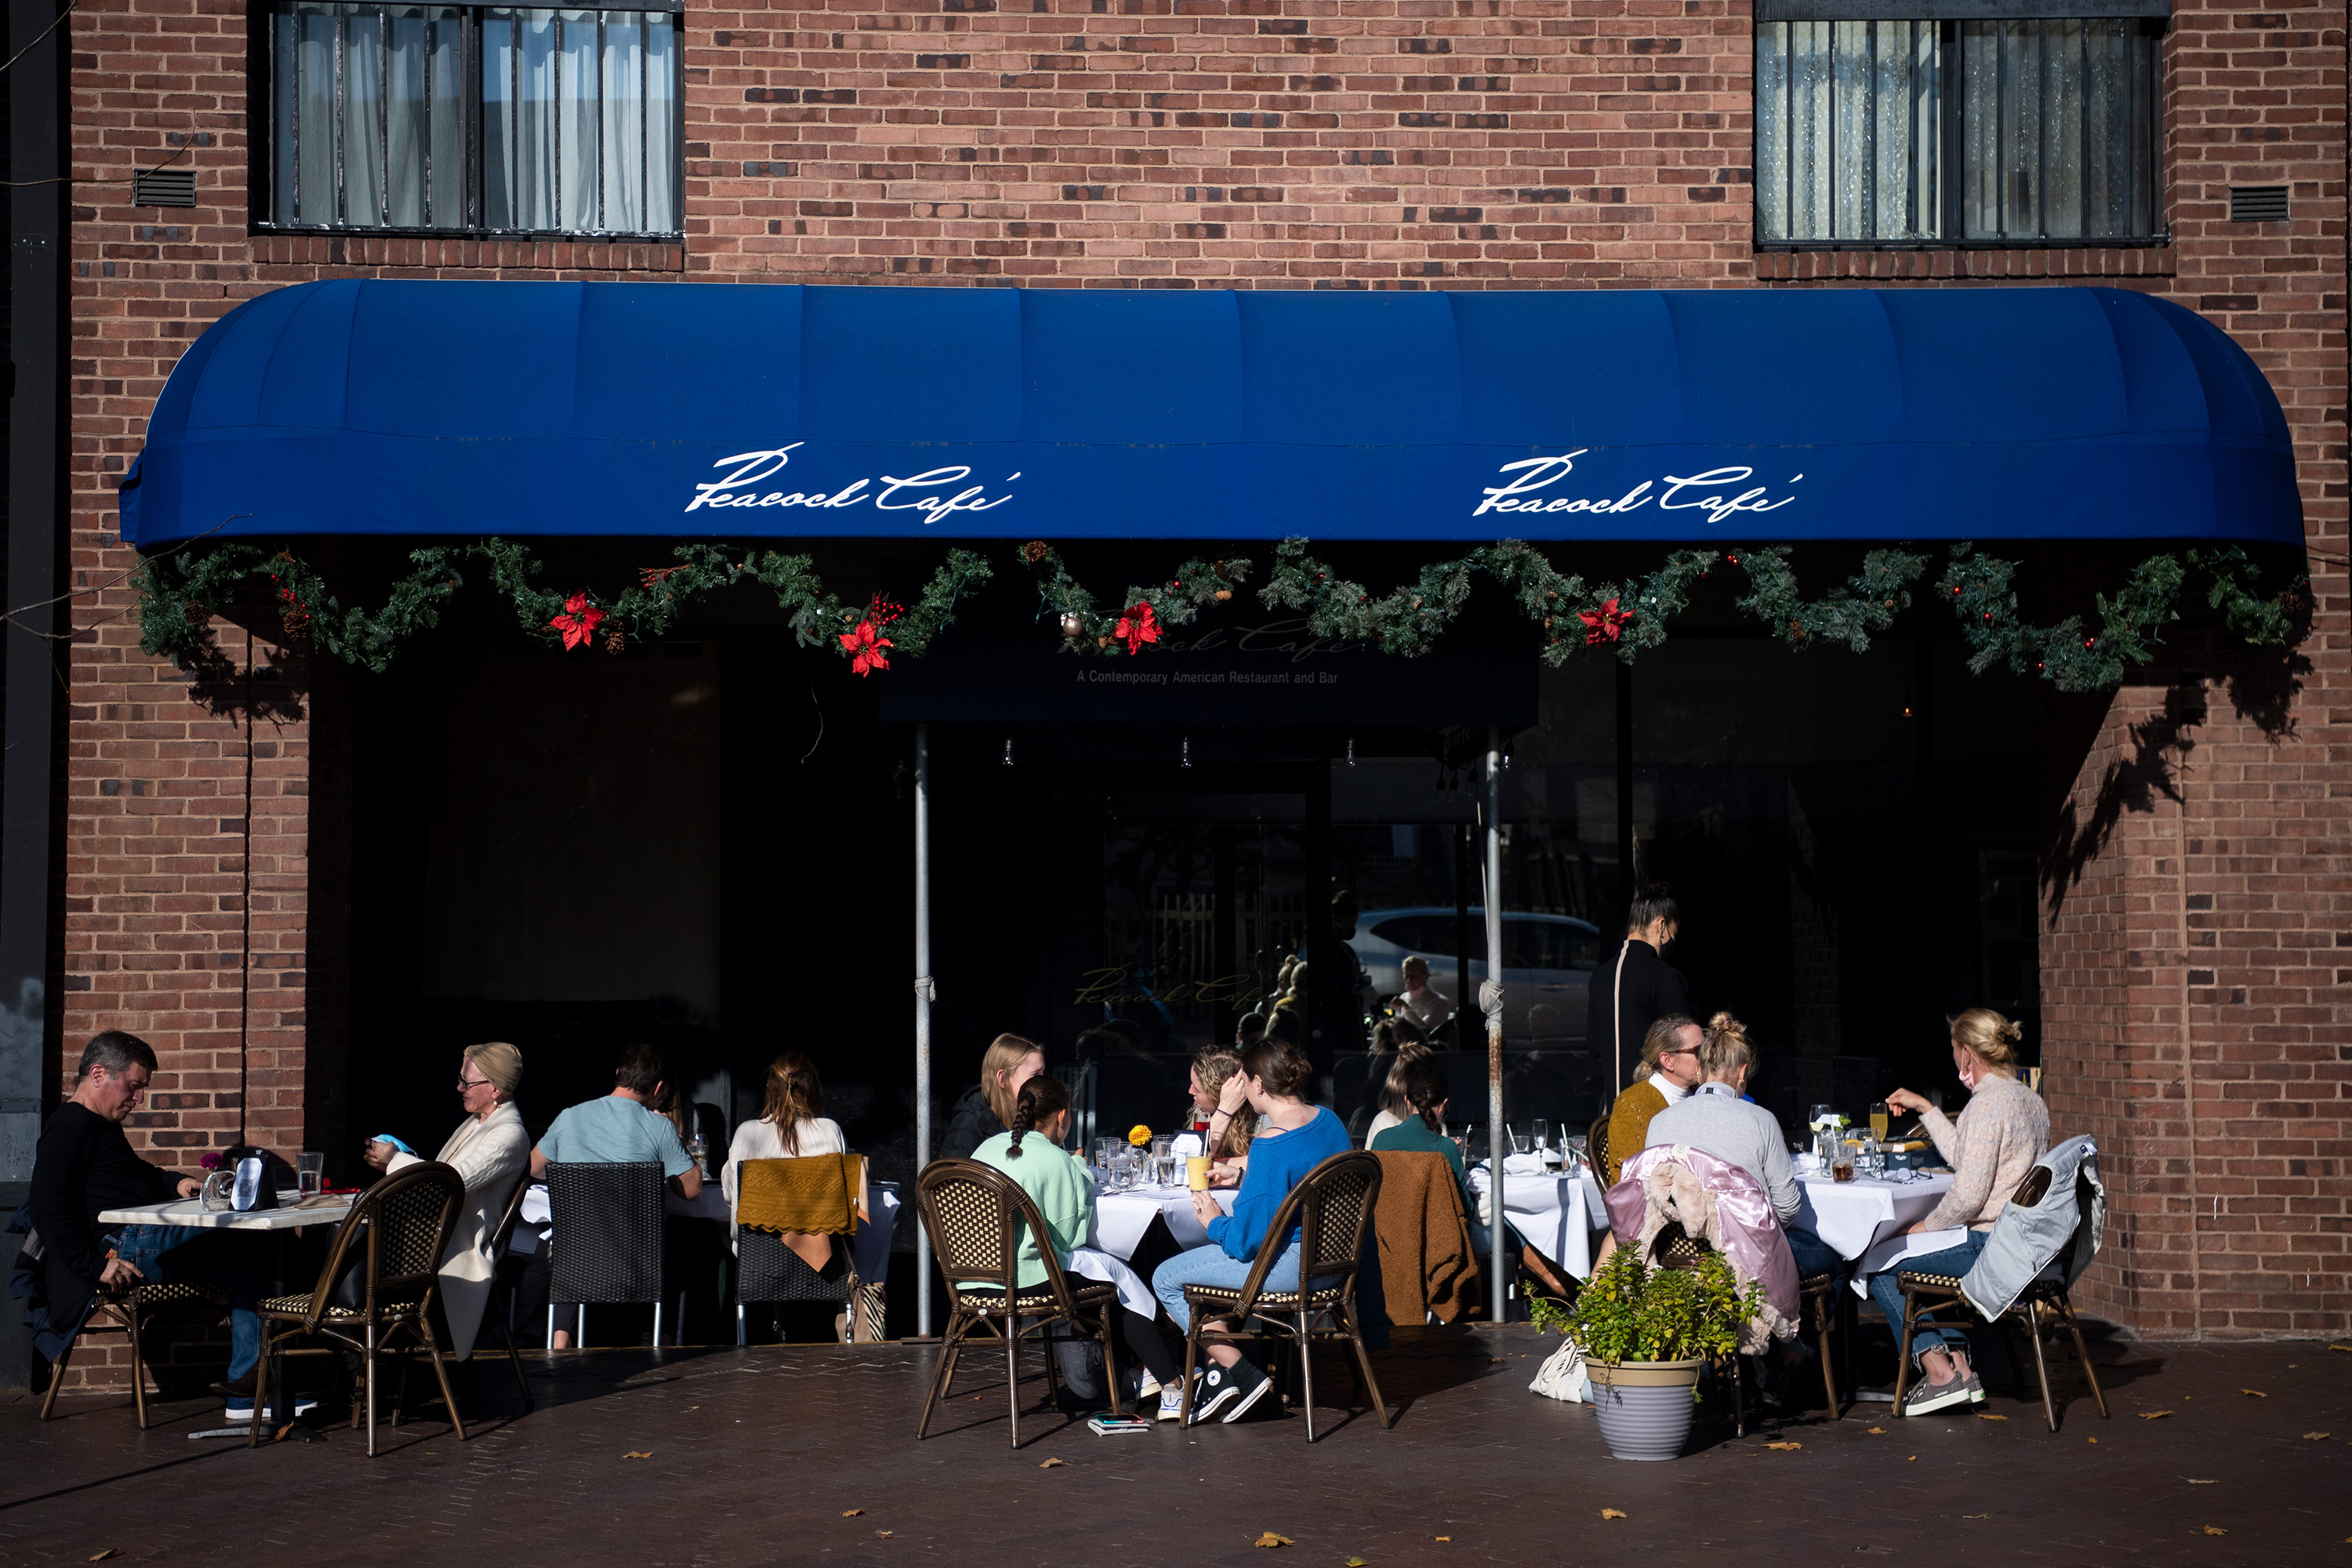 People dine outside at Peacock Cafe on November 28, 2020 in Washington, DC